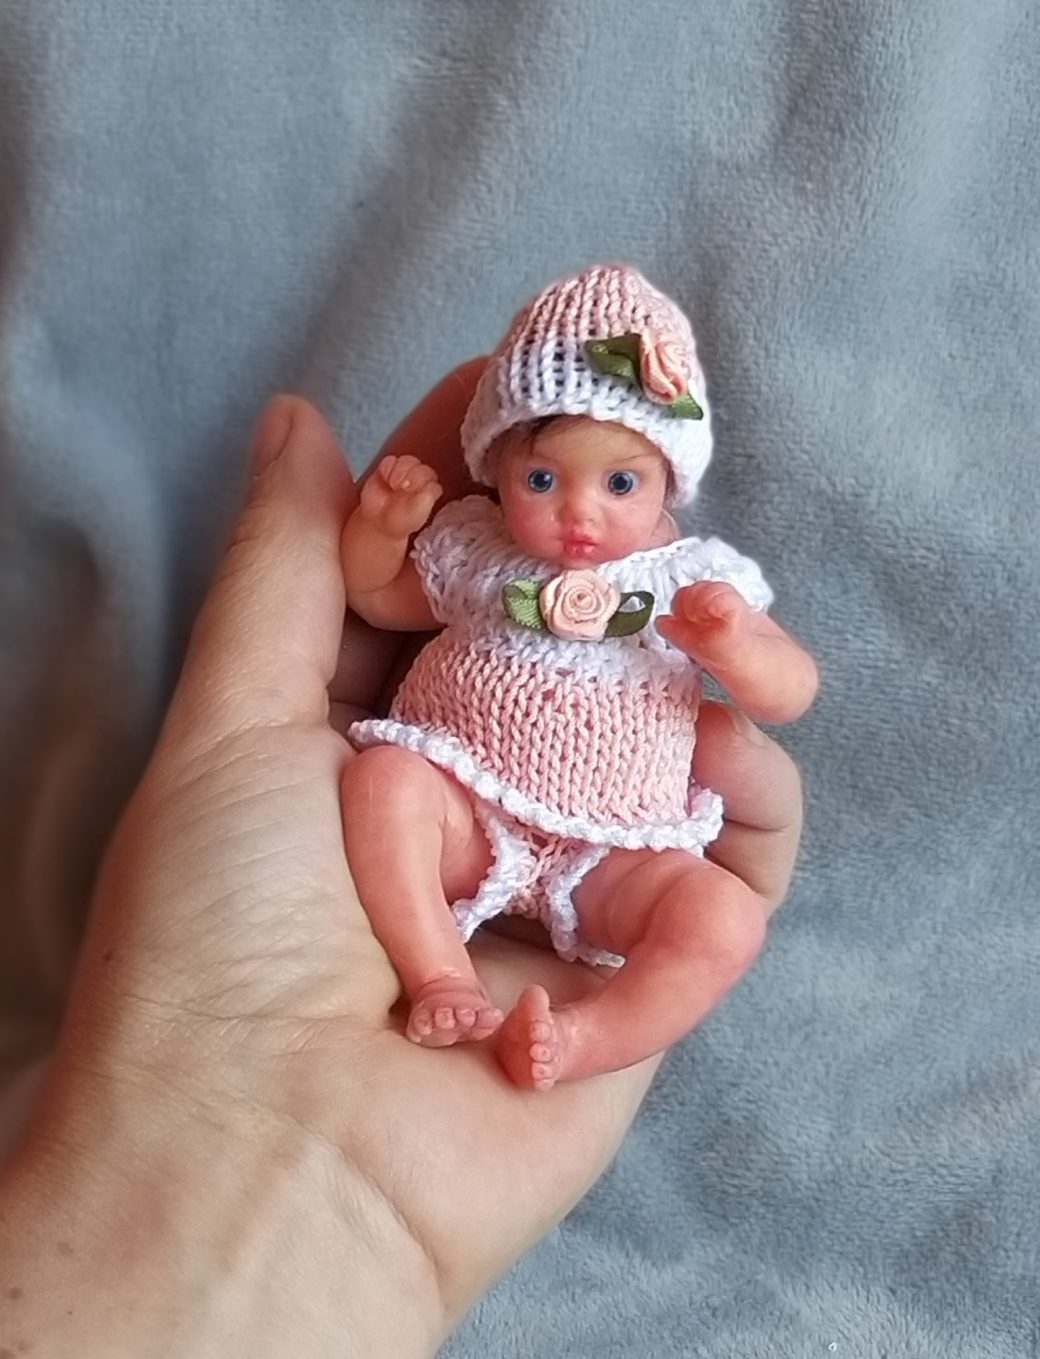 Silicone reborn baby full body mini Lilu 4.3 , painted, eyes open, hair rooting, open mouth with pacifier and bootle, mini reborn doll (2)